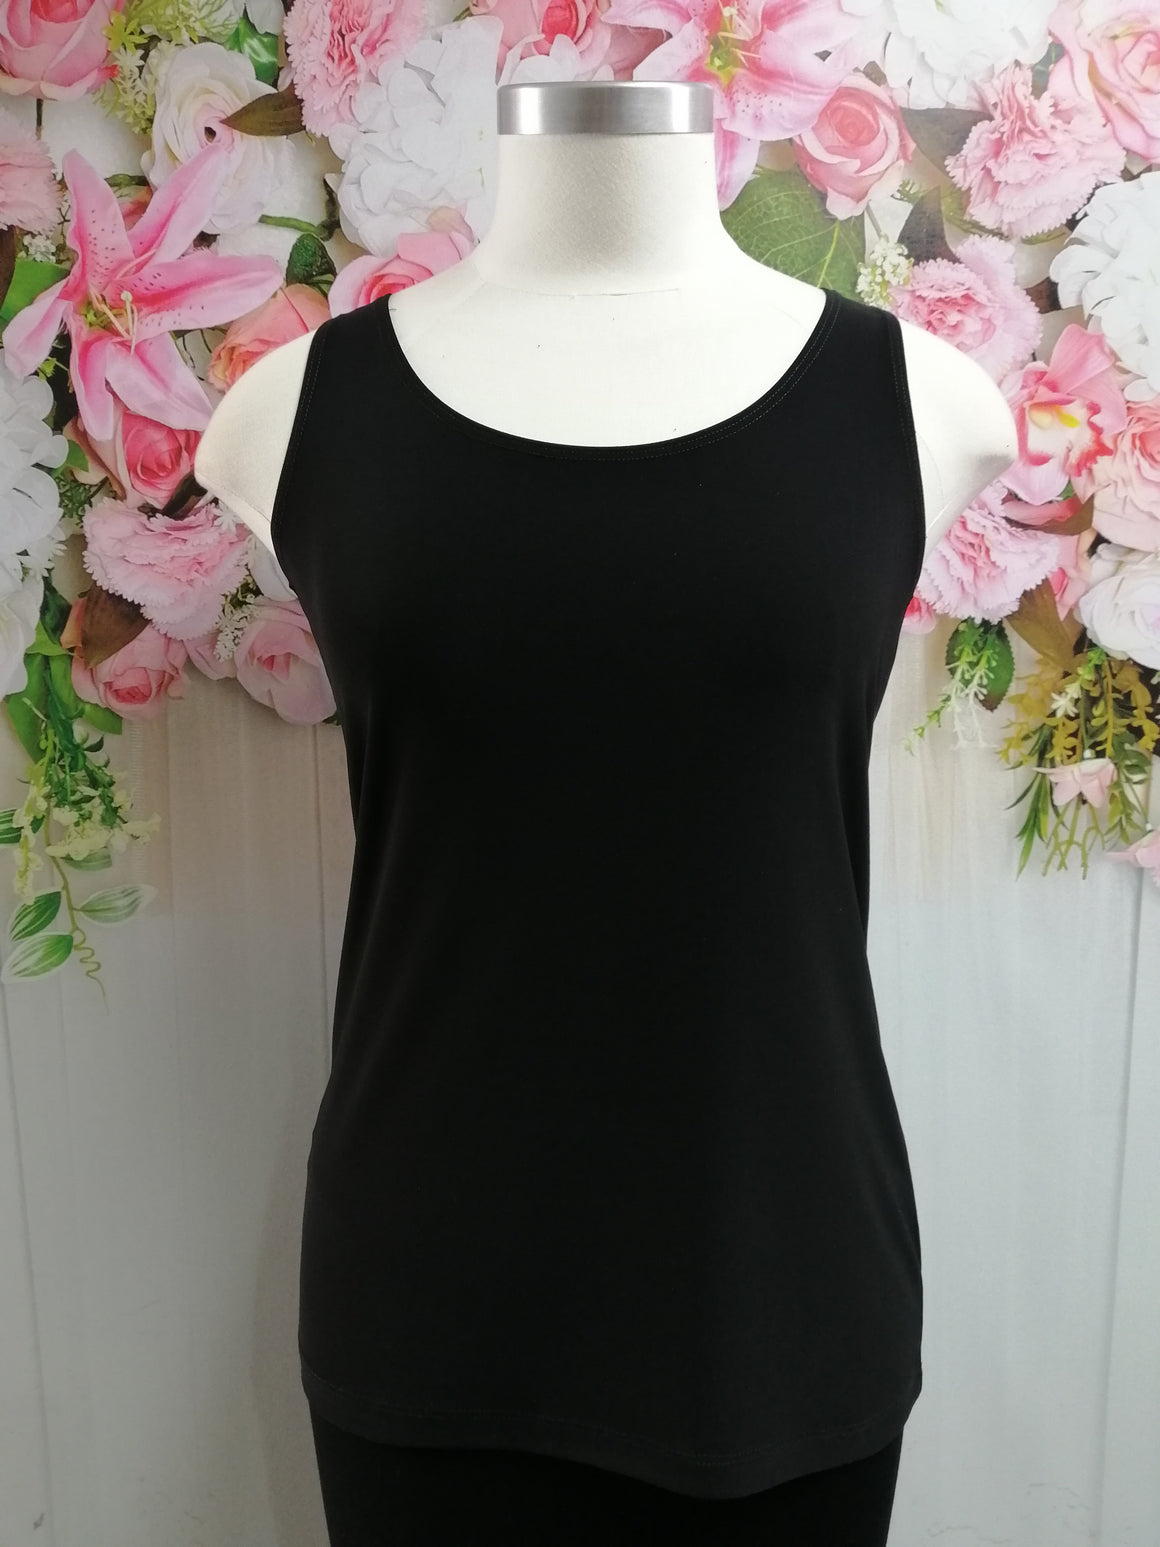 Picadilly Cami - Black - Fashion Focus